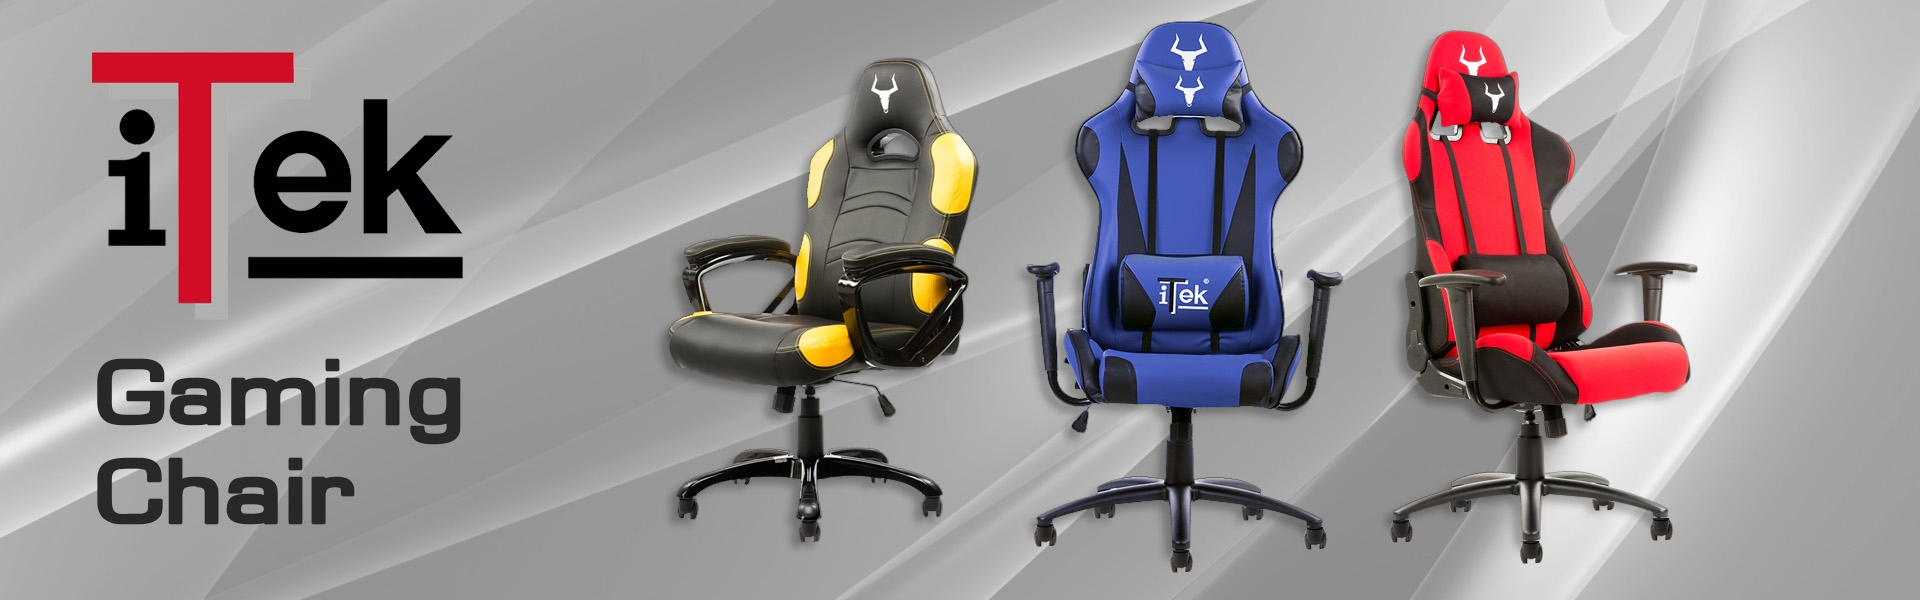 itek gaming chair